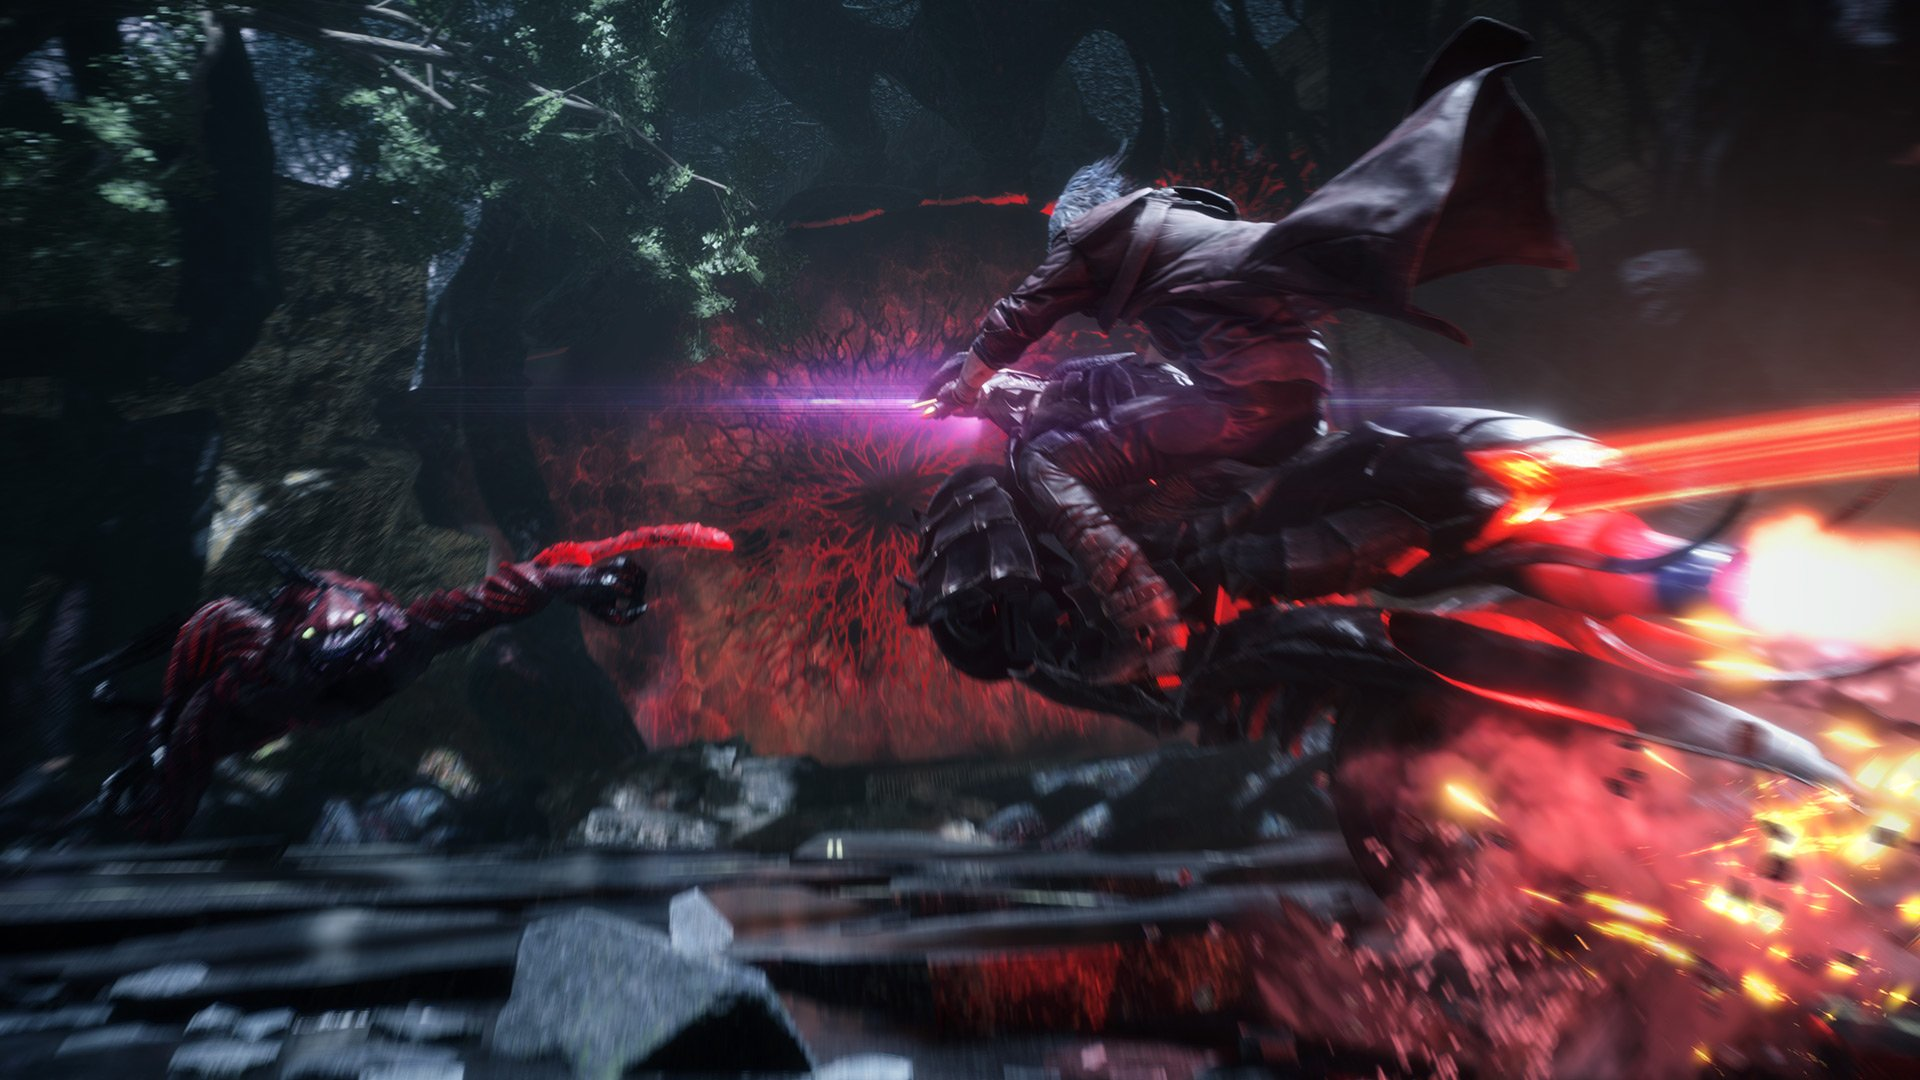 New Devil May Cry 5 Demo Slated For Ps4 And Xbox One